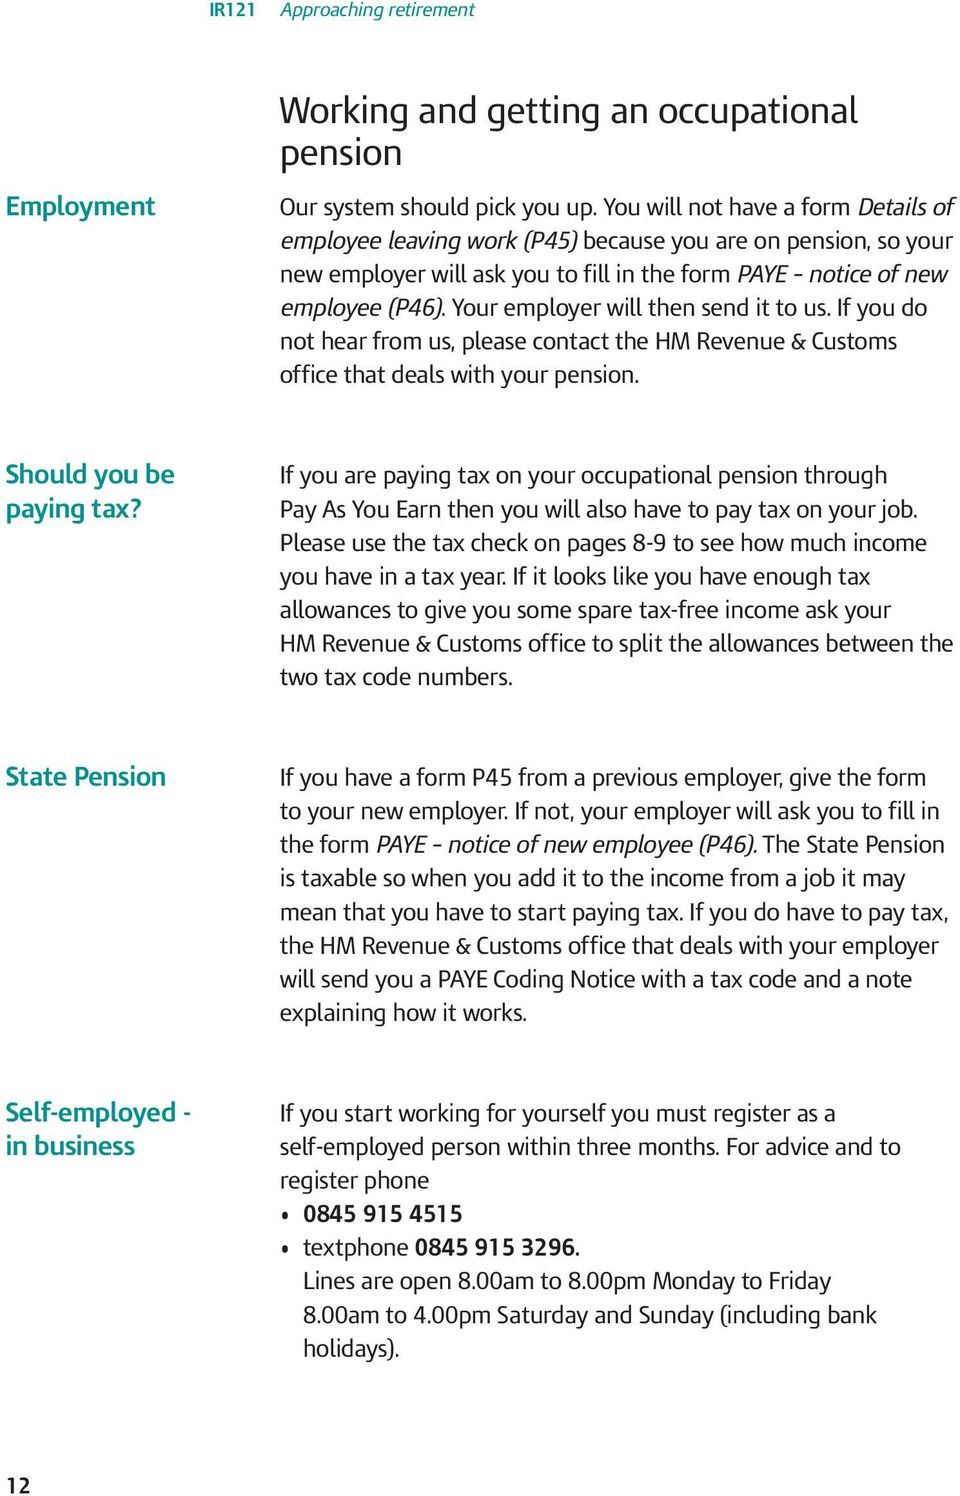 Your employer will then send it to us. If you do not hear from us, please contact the HM Revenue & Customs office that deals with your pension. Should you be paying tax?